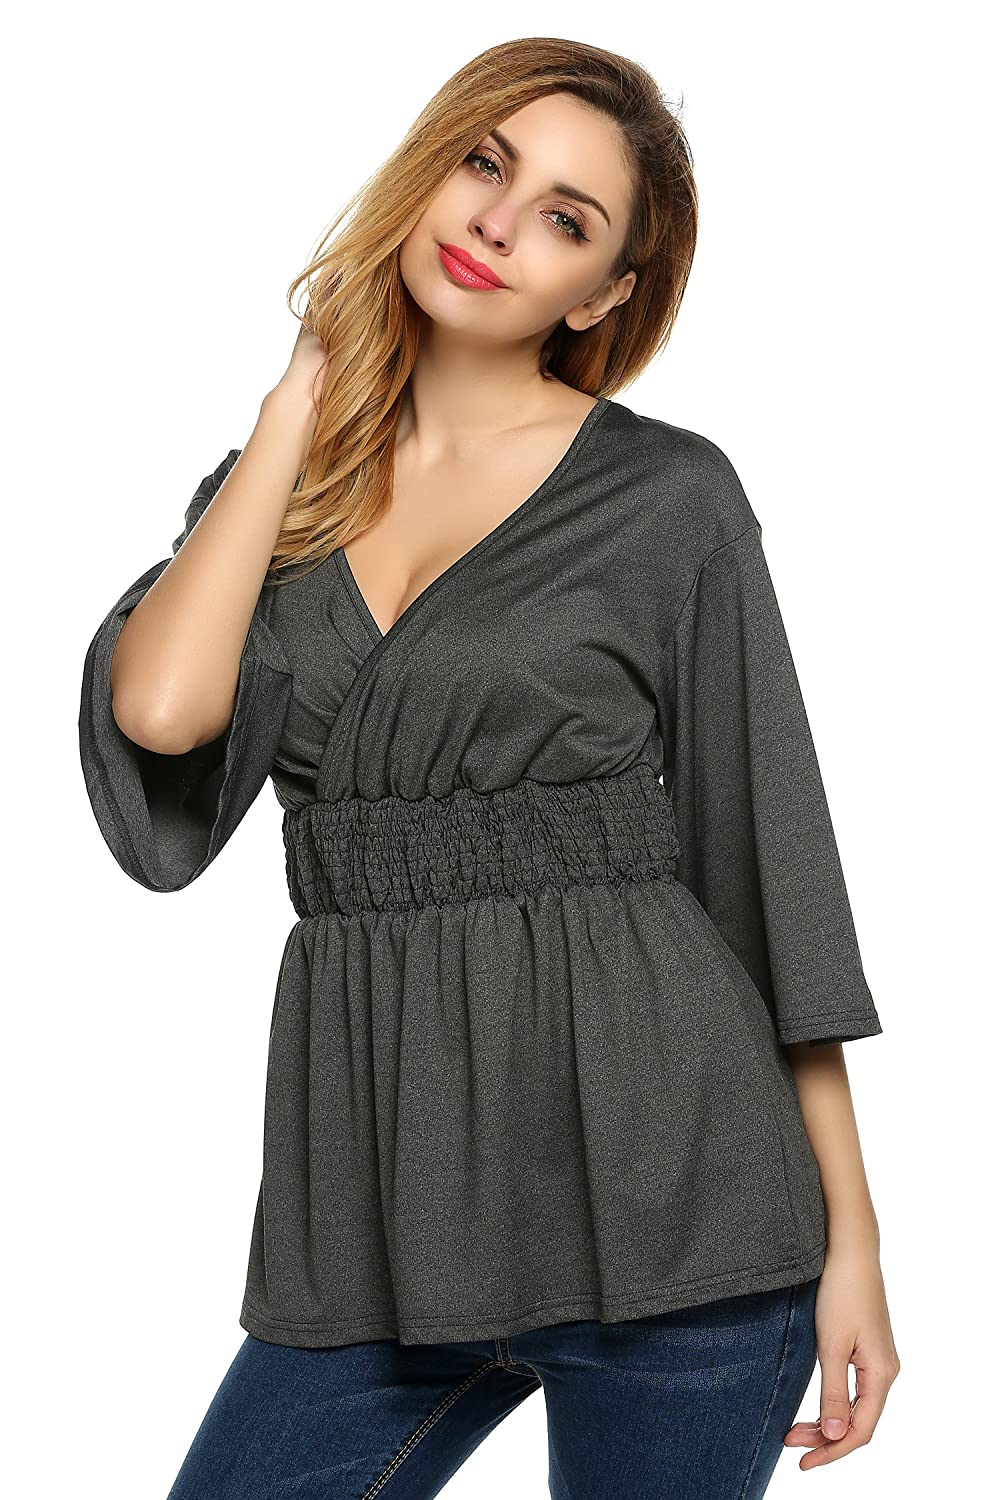 0c51ee024081d BURLADY Womens Casual Summer V Neck Babydoll Blouses T-Shirt Tunic Tops at  Amazon Women s Clothing store